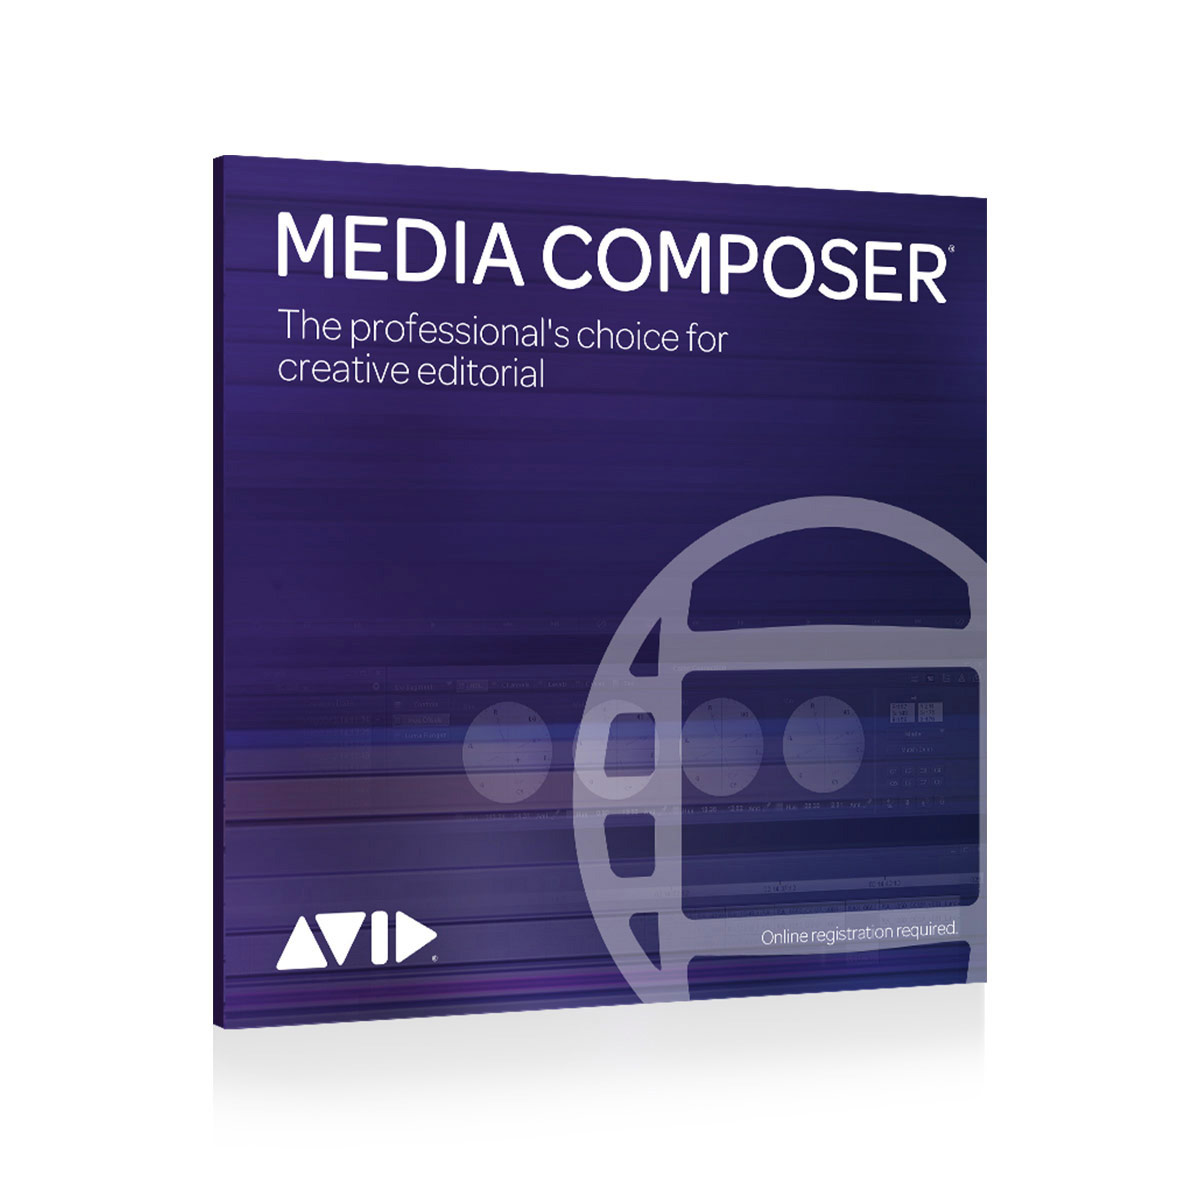 Avid Media Composer Perpetual License with Dongle